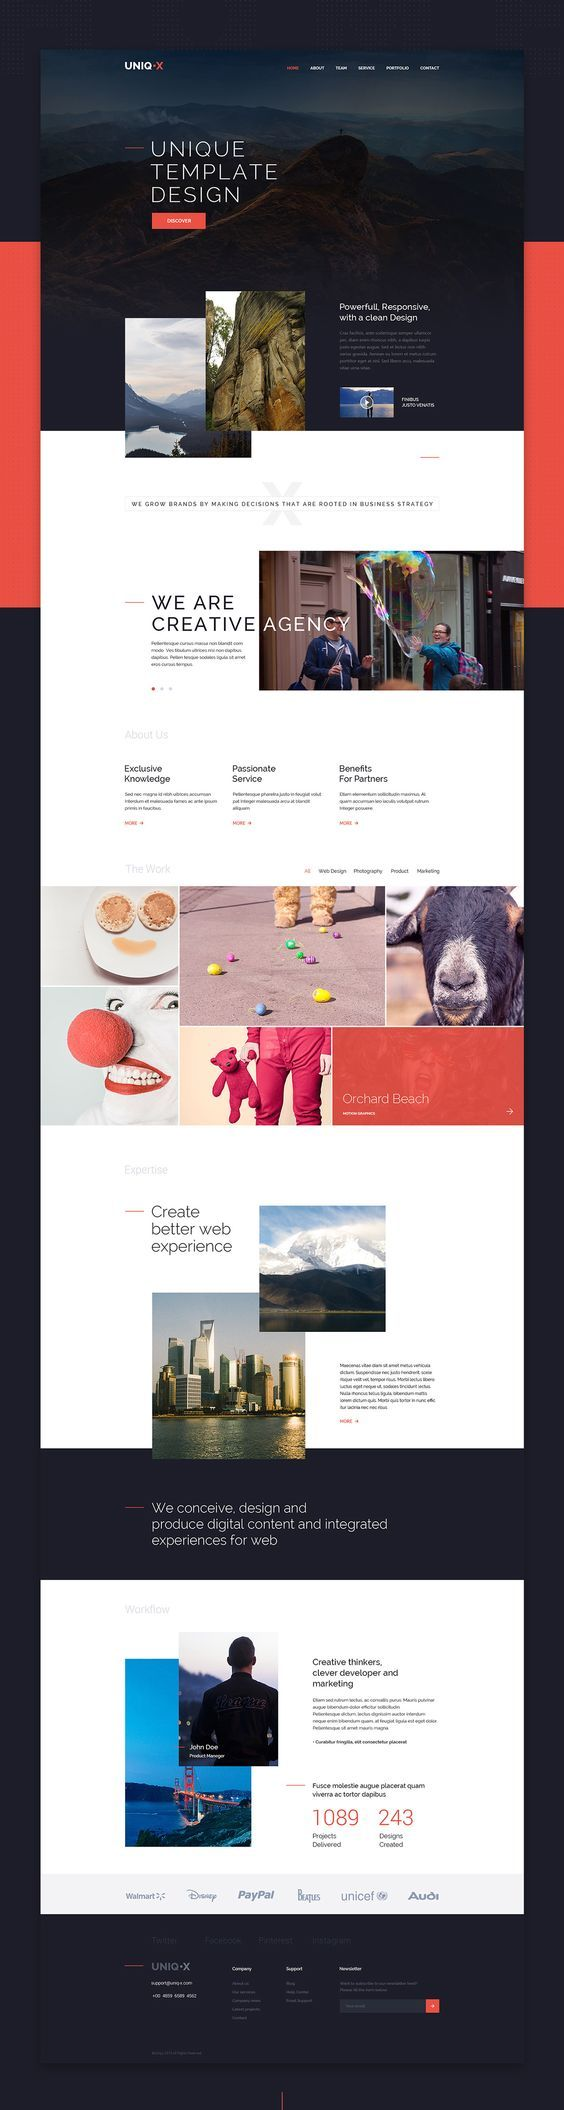 Out with the old and in with the new – Web Design Inspiration 2017! If you've been following this blog for any number of posts (or years) it's often about web design inspiration, but time slows for no man, and this web design inspiration 2017 list is intended to get the juices flowing for what... Read the full article